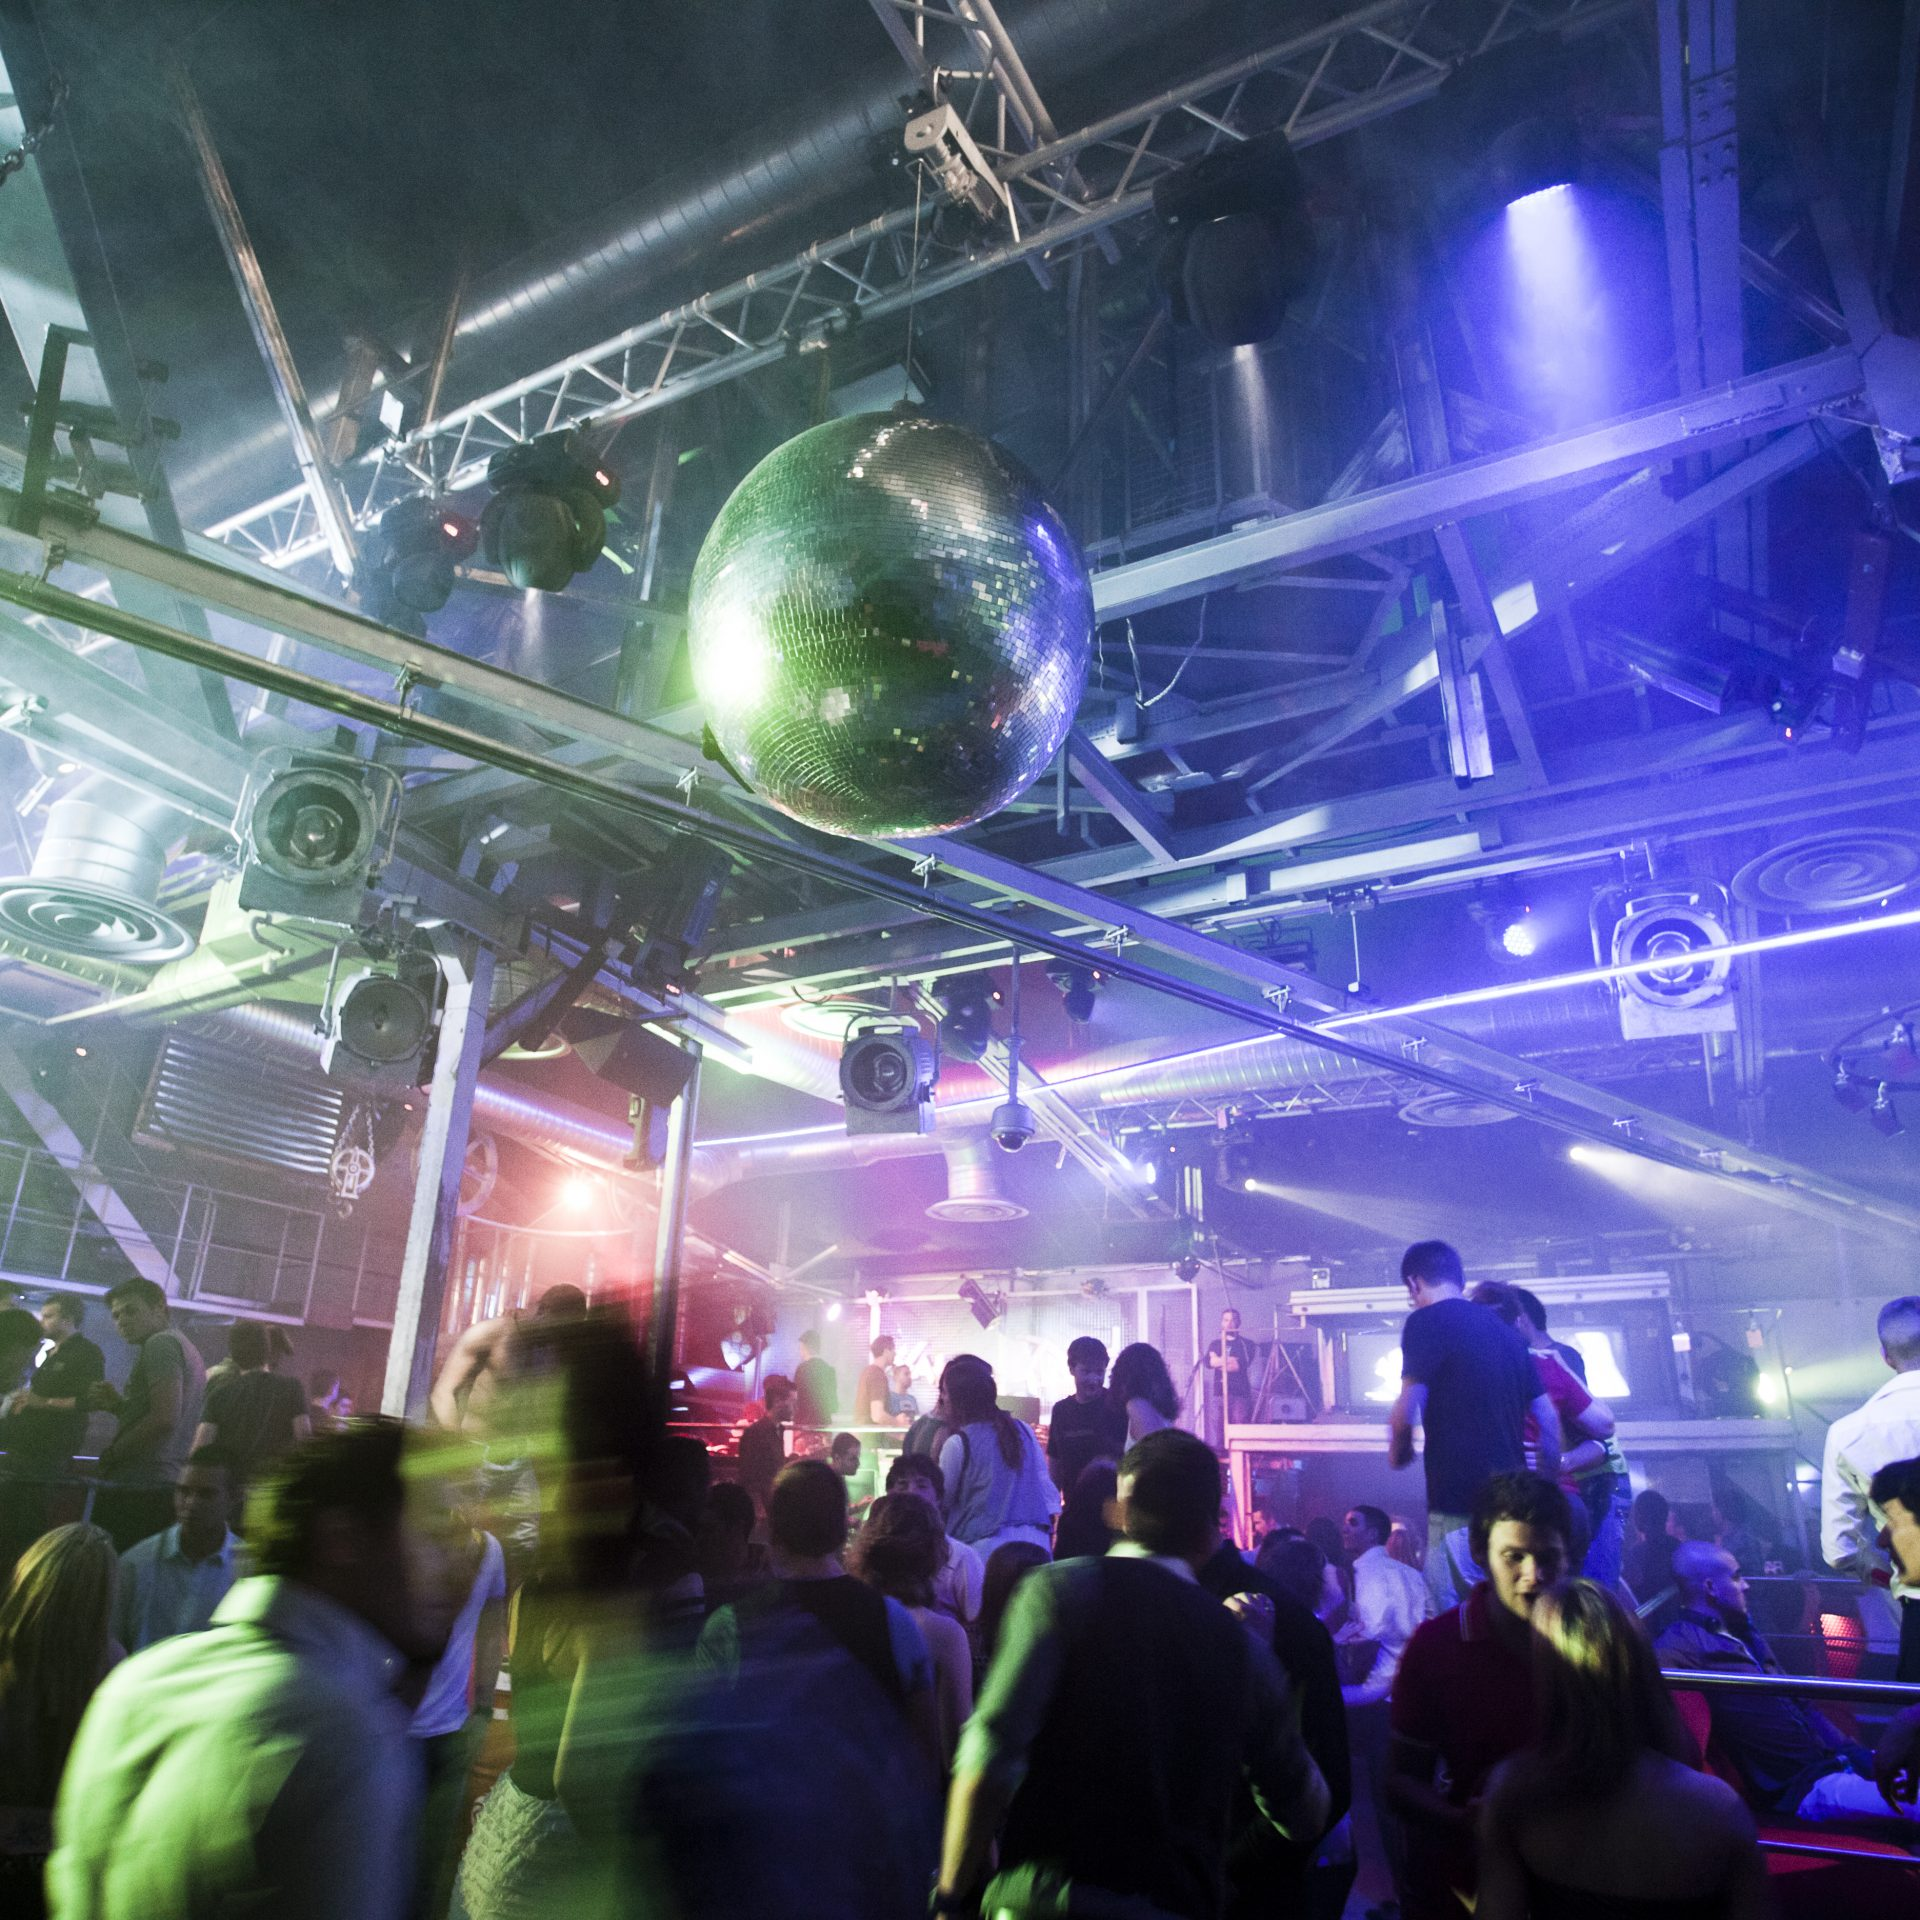 Gay bars clubs in Lyon